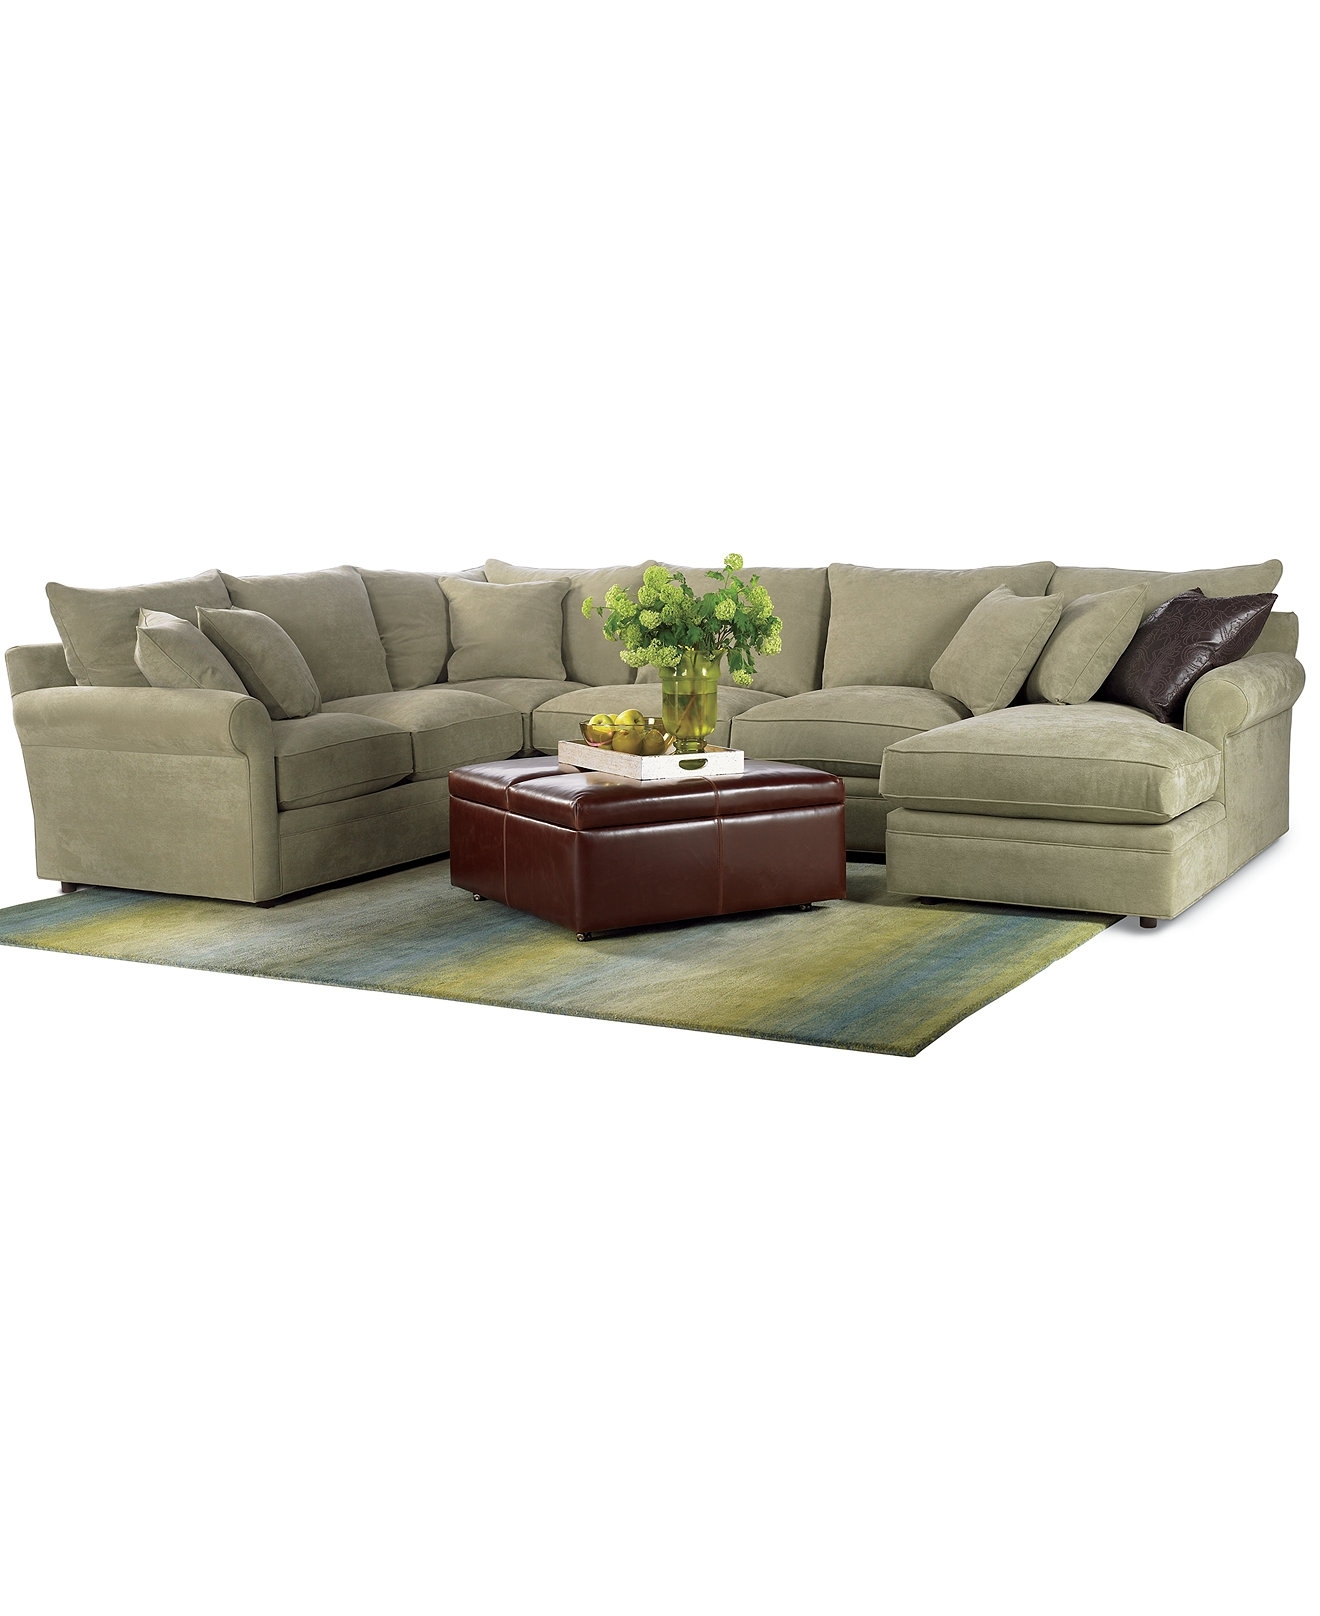 Current Armless Sectional Sofas Within Doss Fabric Microfiber Sectional Sofa, 4 Piece (Left Arm Facing (View 4 of 20)